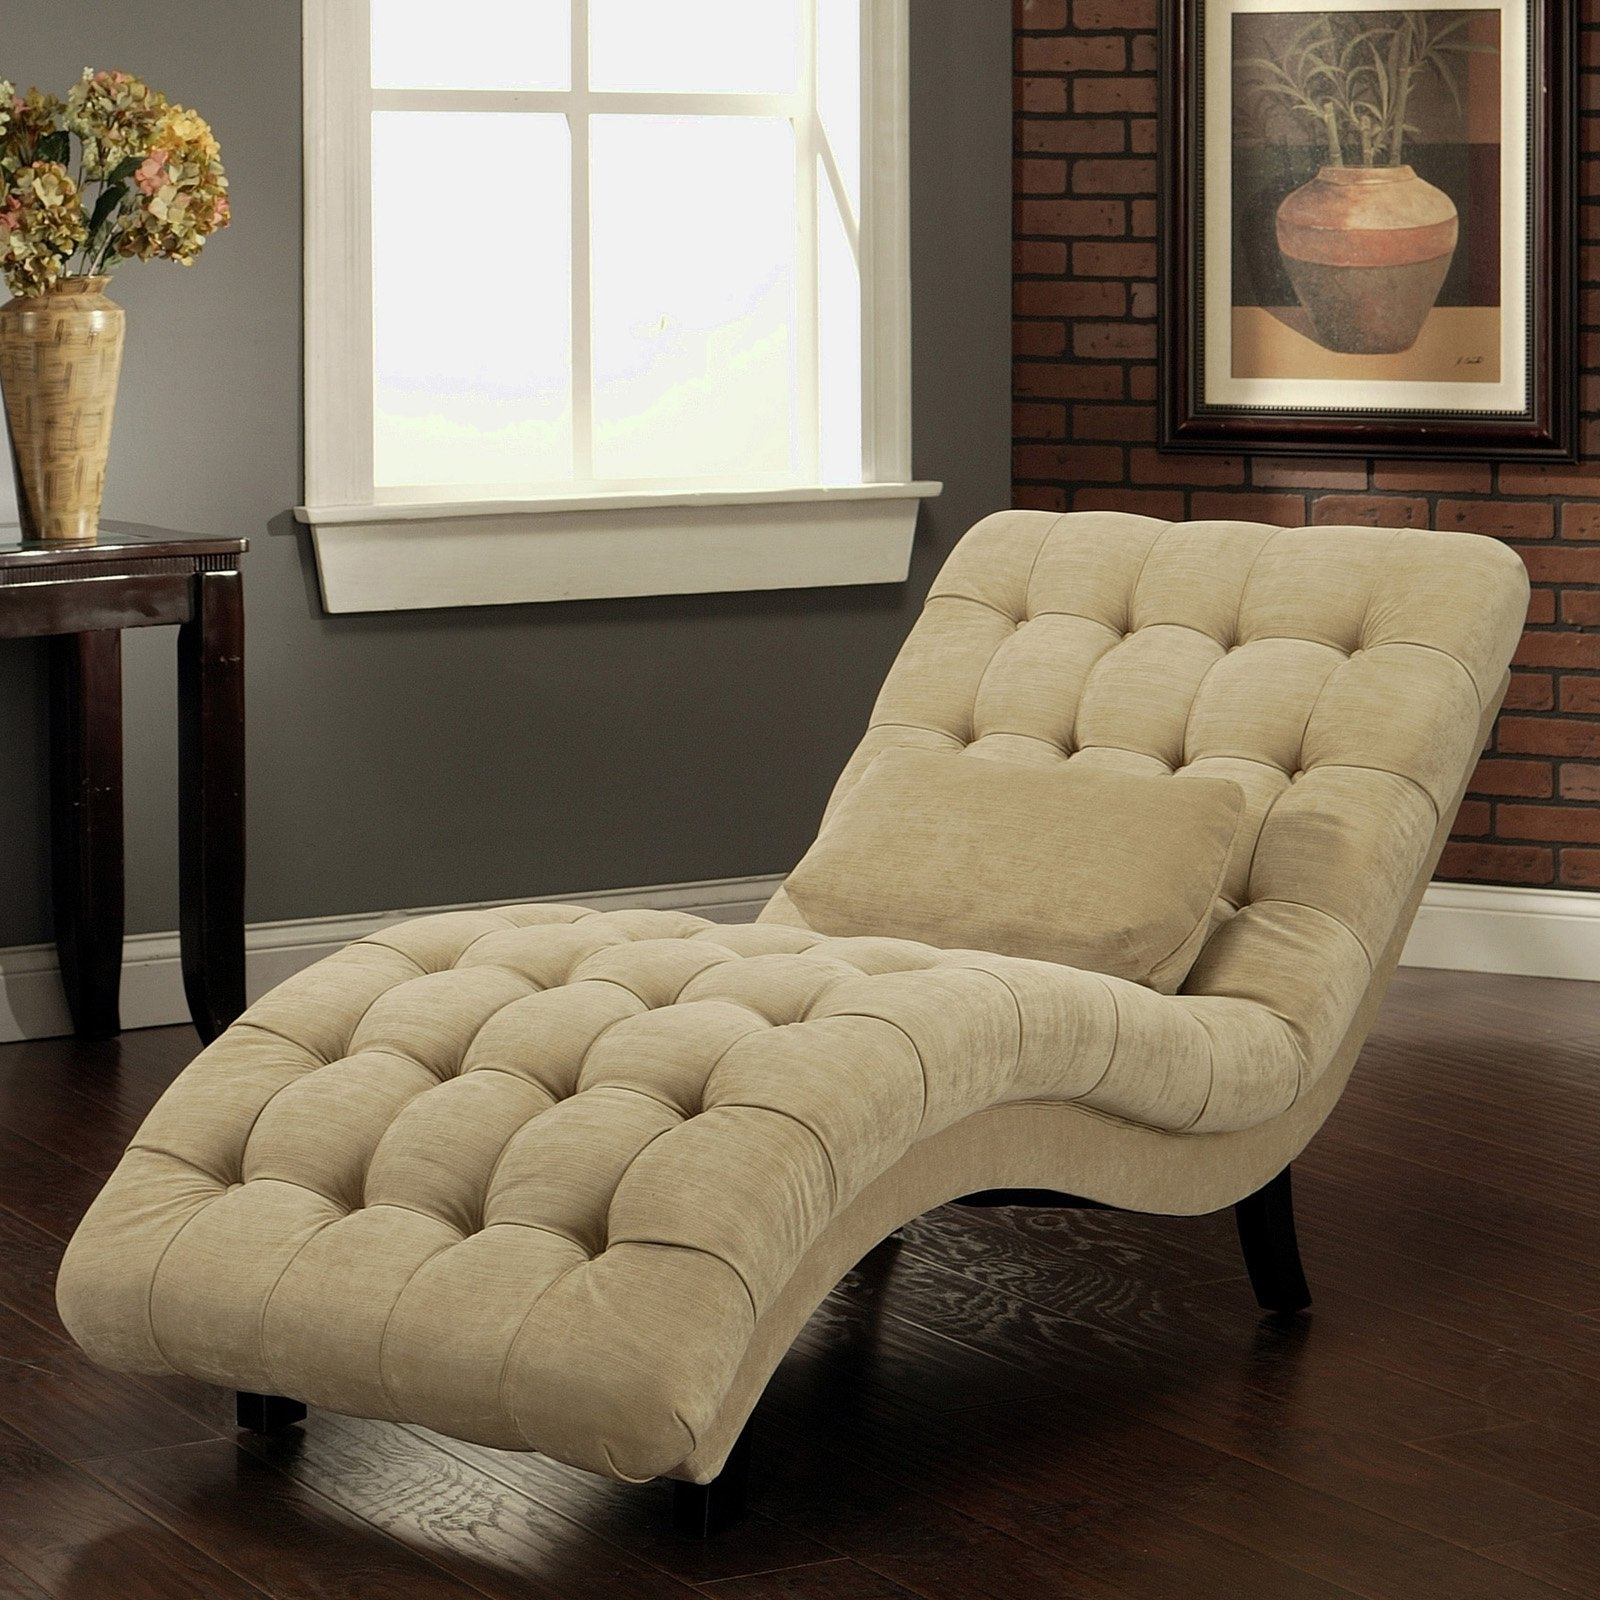 Awesome Indoor Chaise Lounge (View 4 of 15)